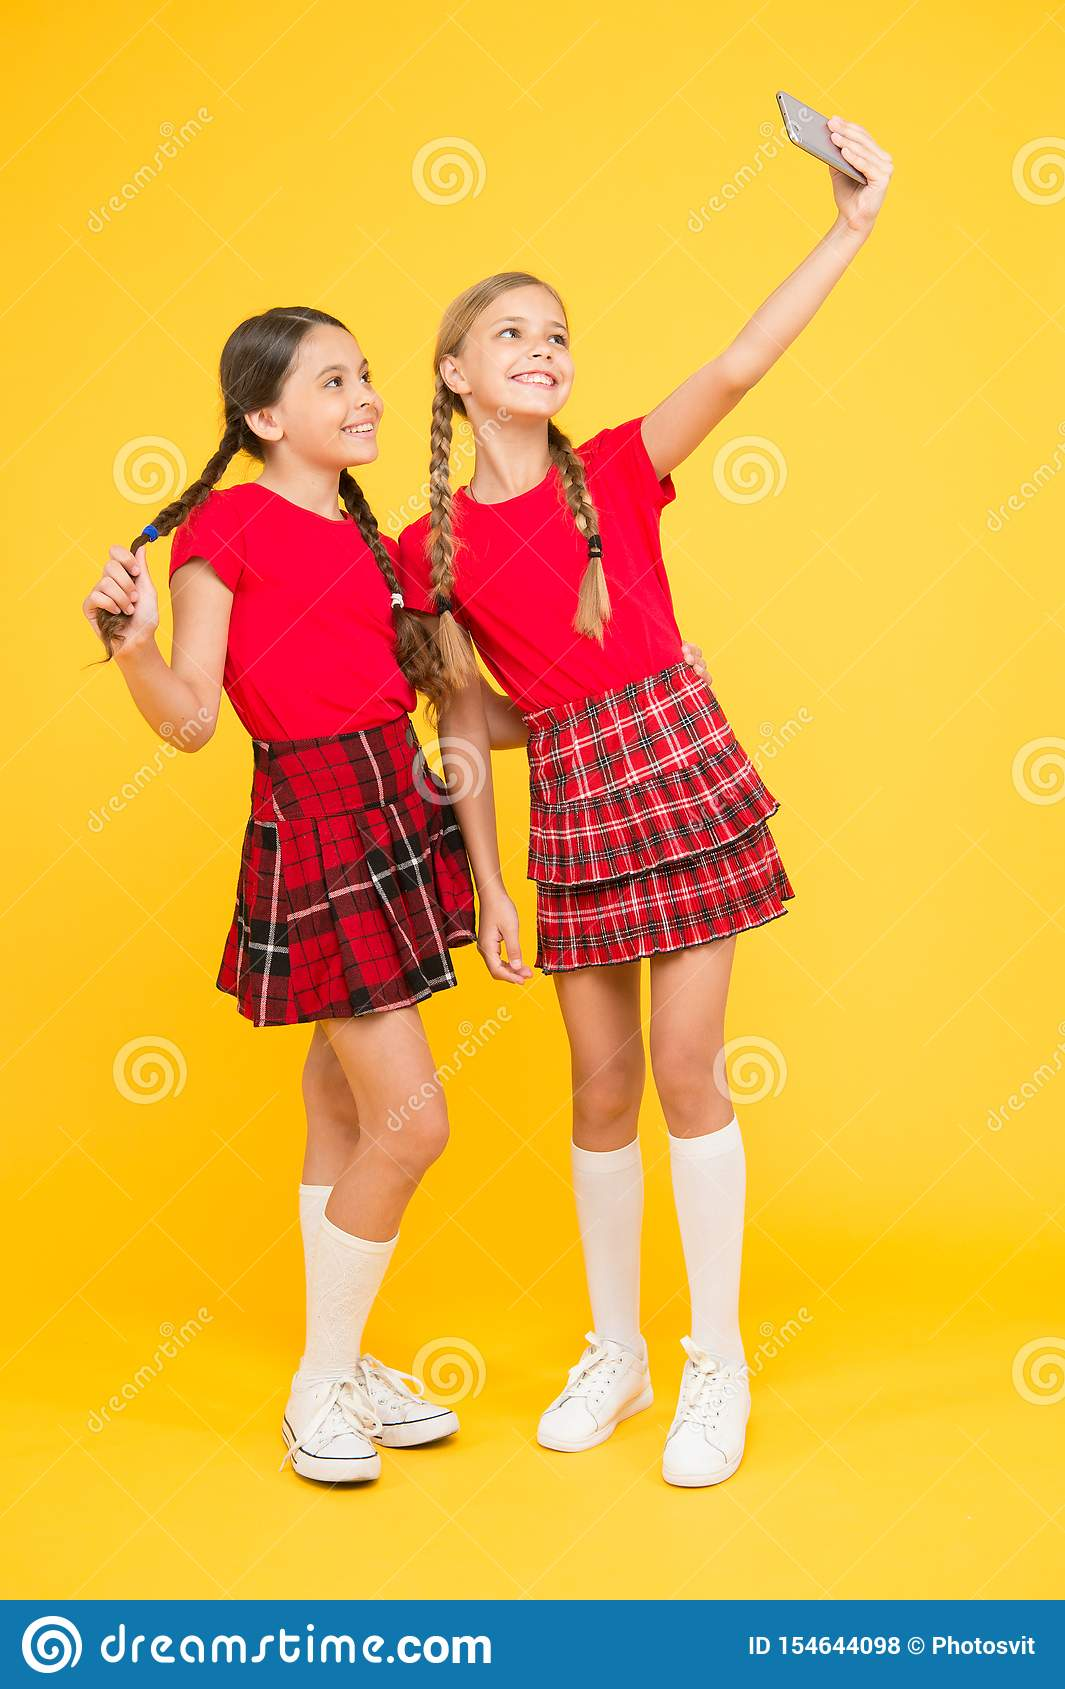 Girls Just Want To take perfect photo. girls just want to have fun. schoolgirls